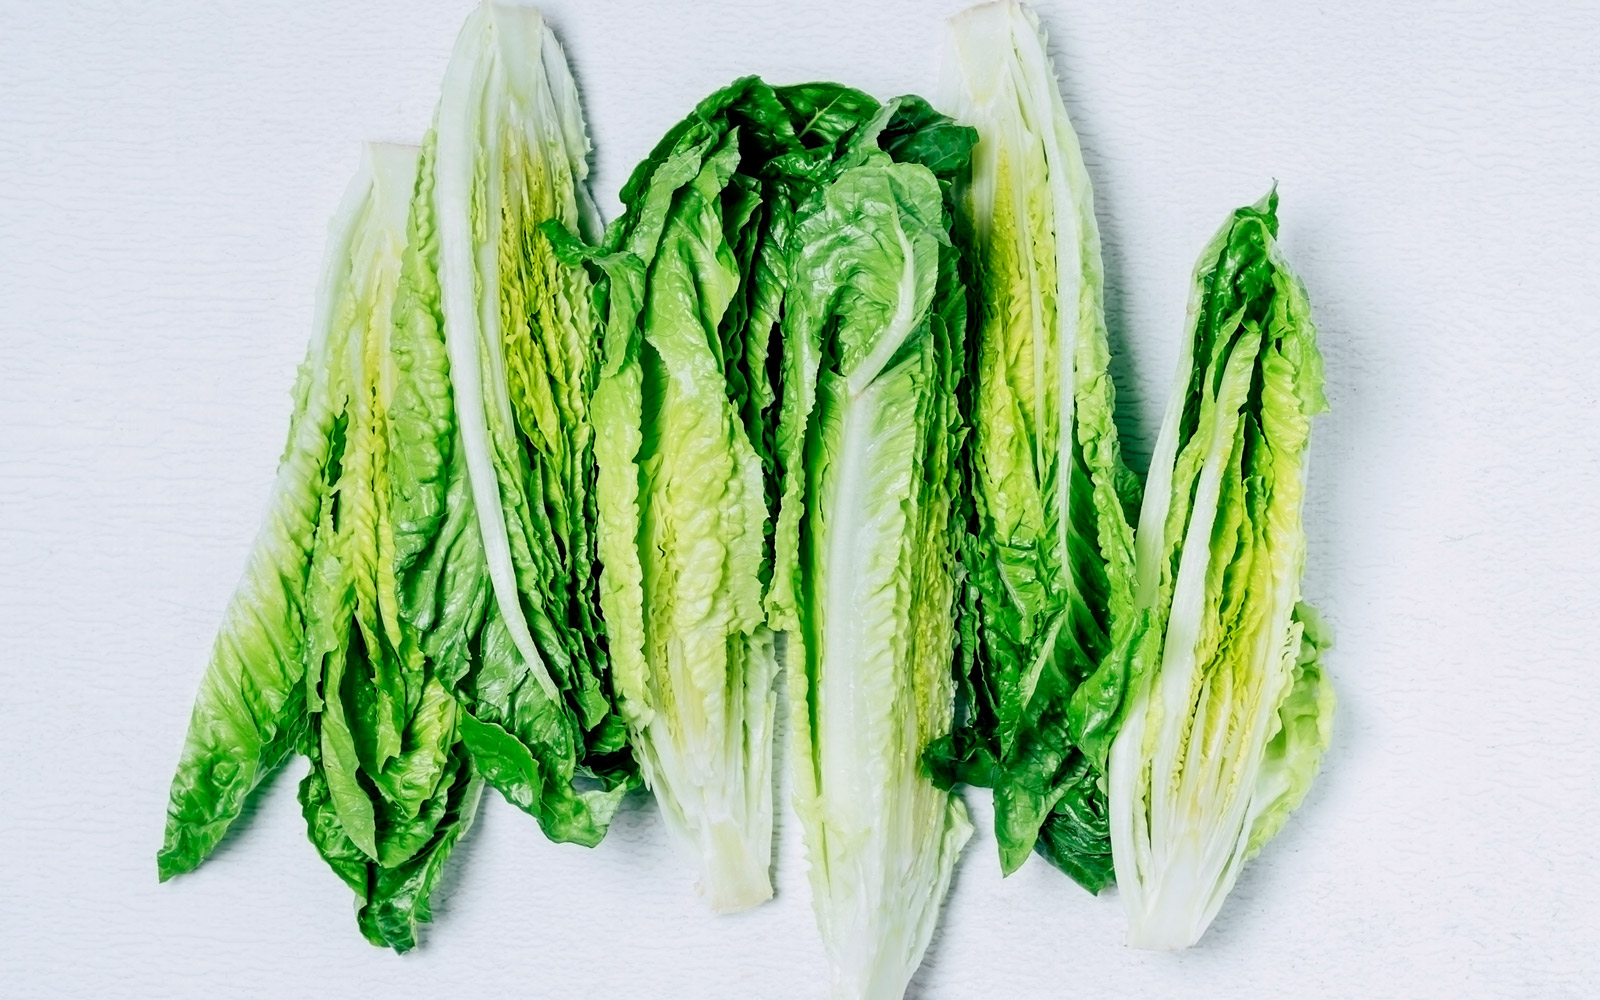 Romaine Lettuce Could Be the Cause of a Deadly E. Coli Outbreak